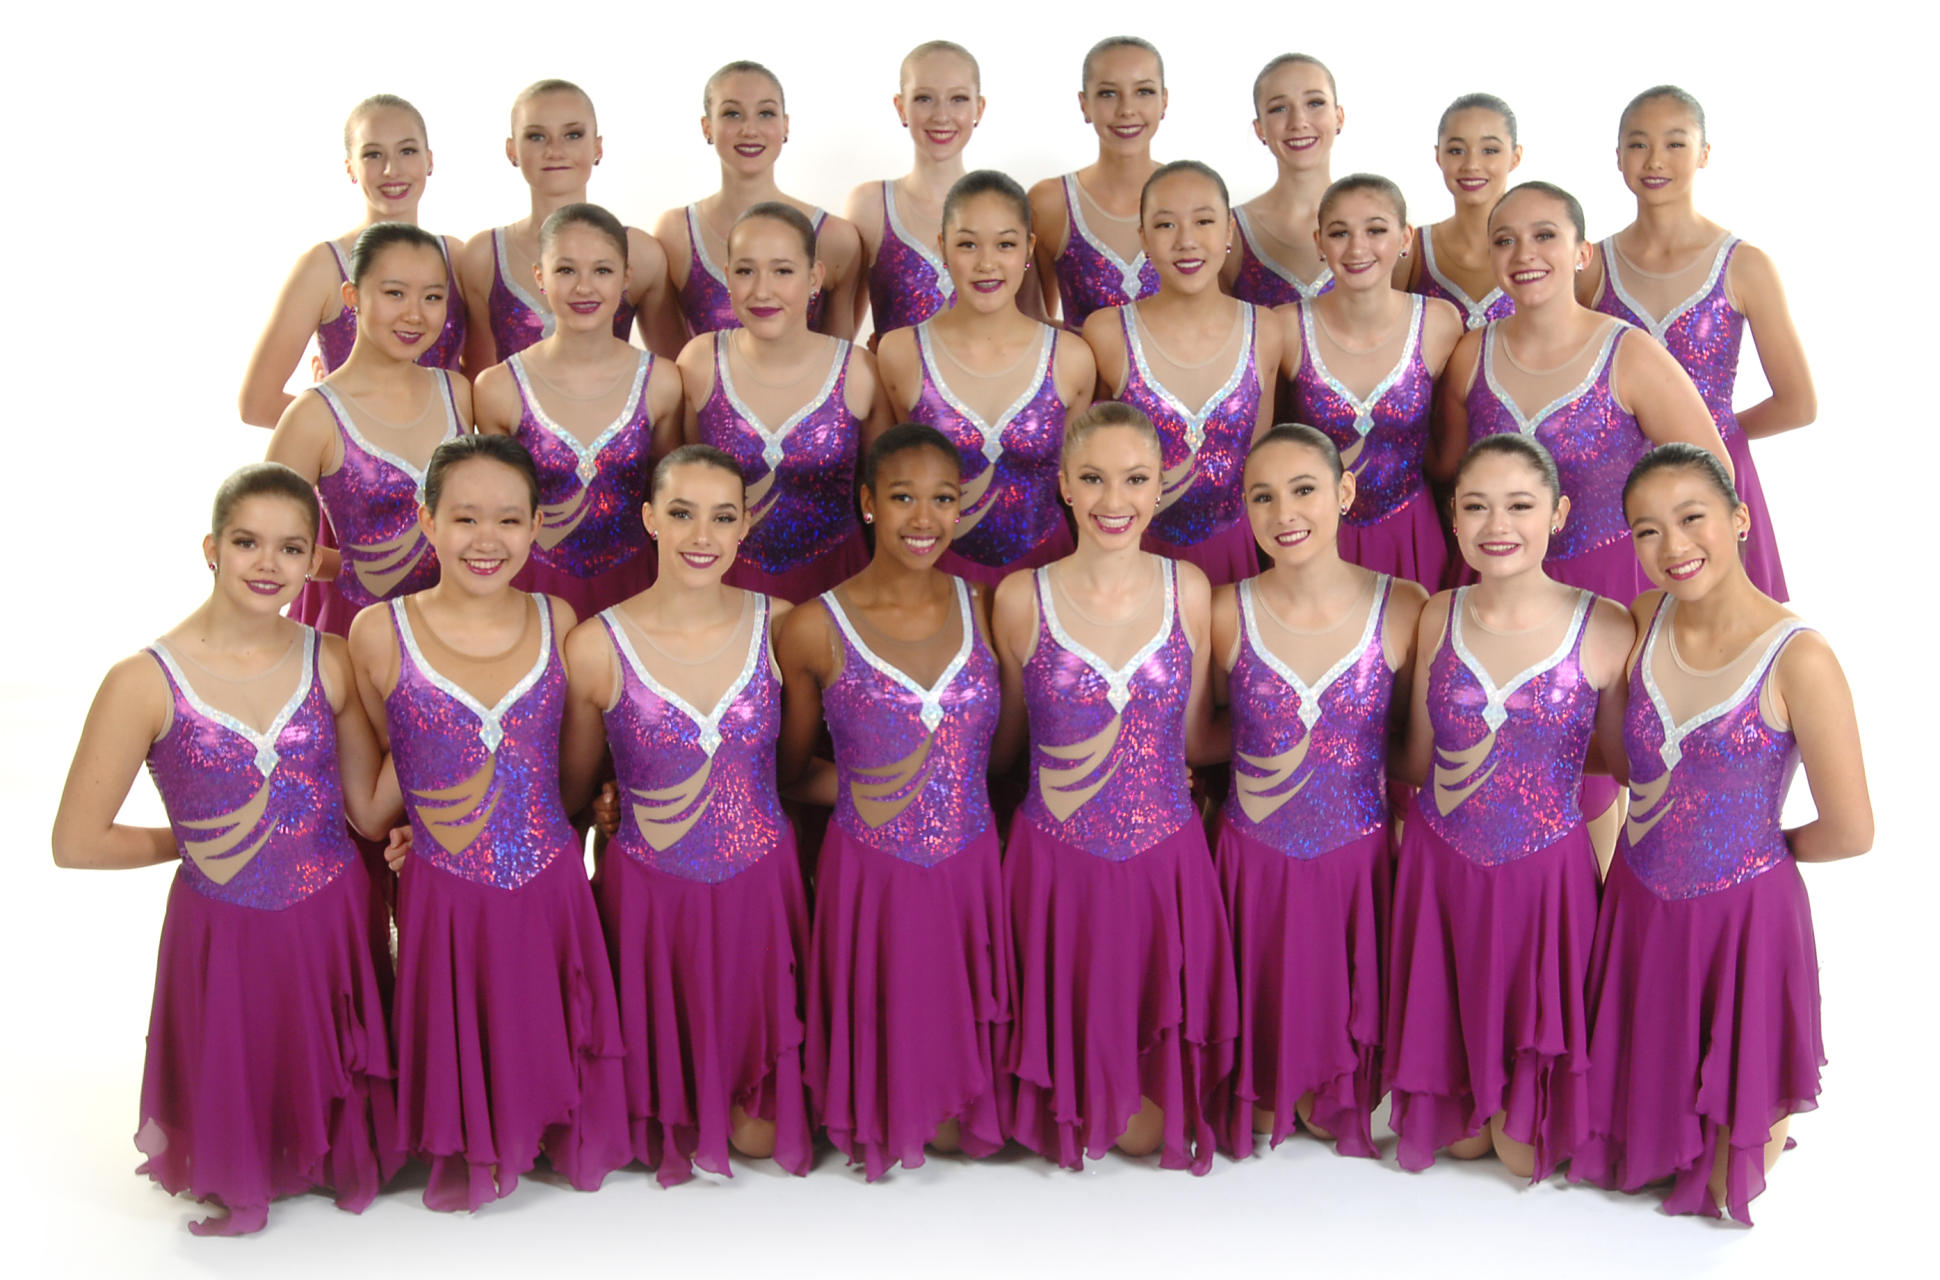 The 2018-19 Skyliners novice line won the 2018 Boston and Richard Porter Synchro Classics, and won bronze at the 2019 Colonial Classic. The Skyliners novice line is a two-time national champion (2018, 2017) and three-time national bronze medalist (2015, 2014, 2013 and 2011).